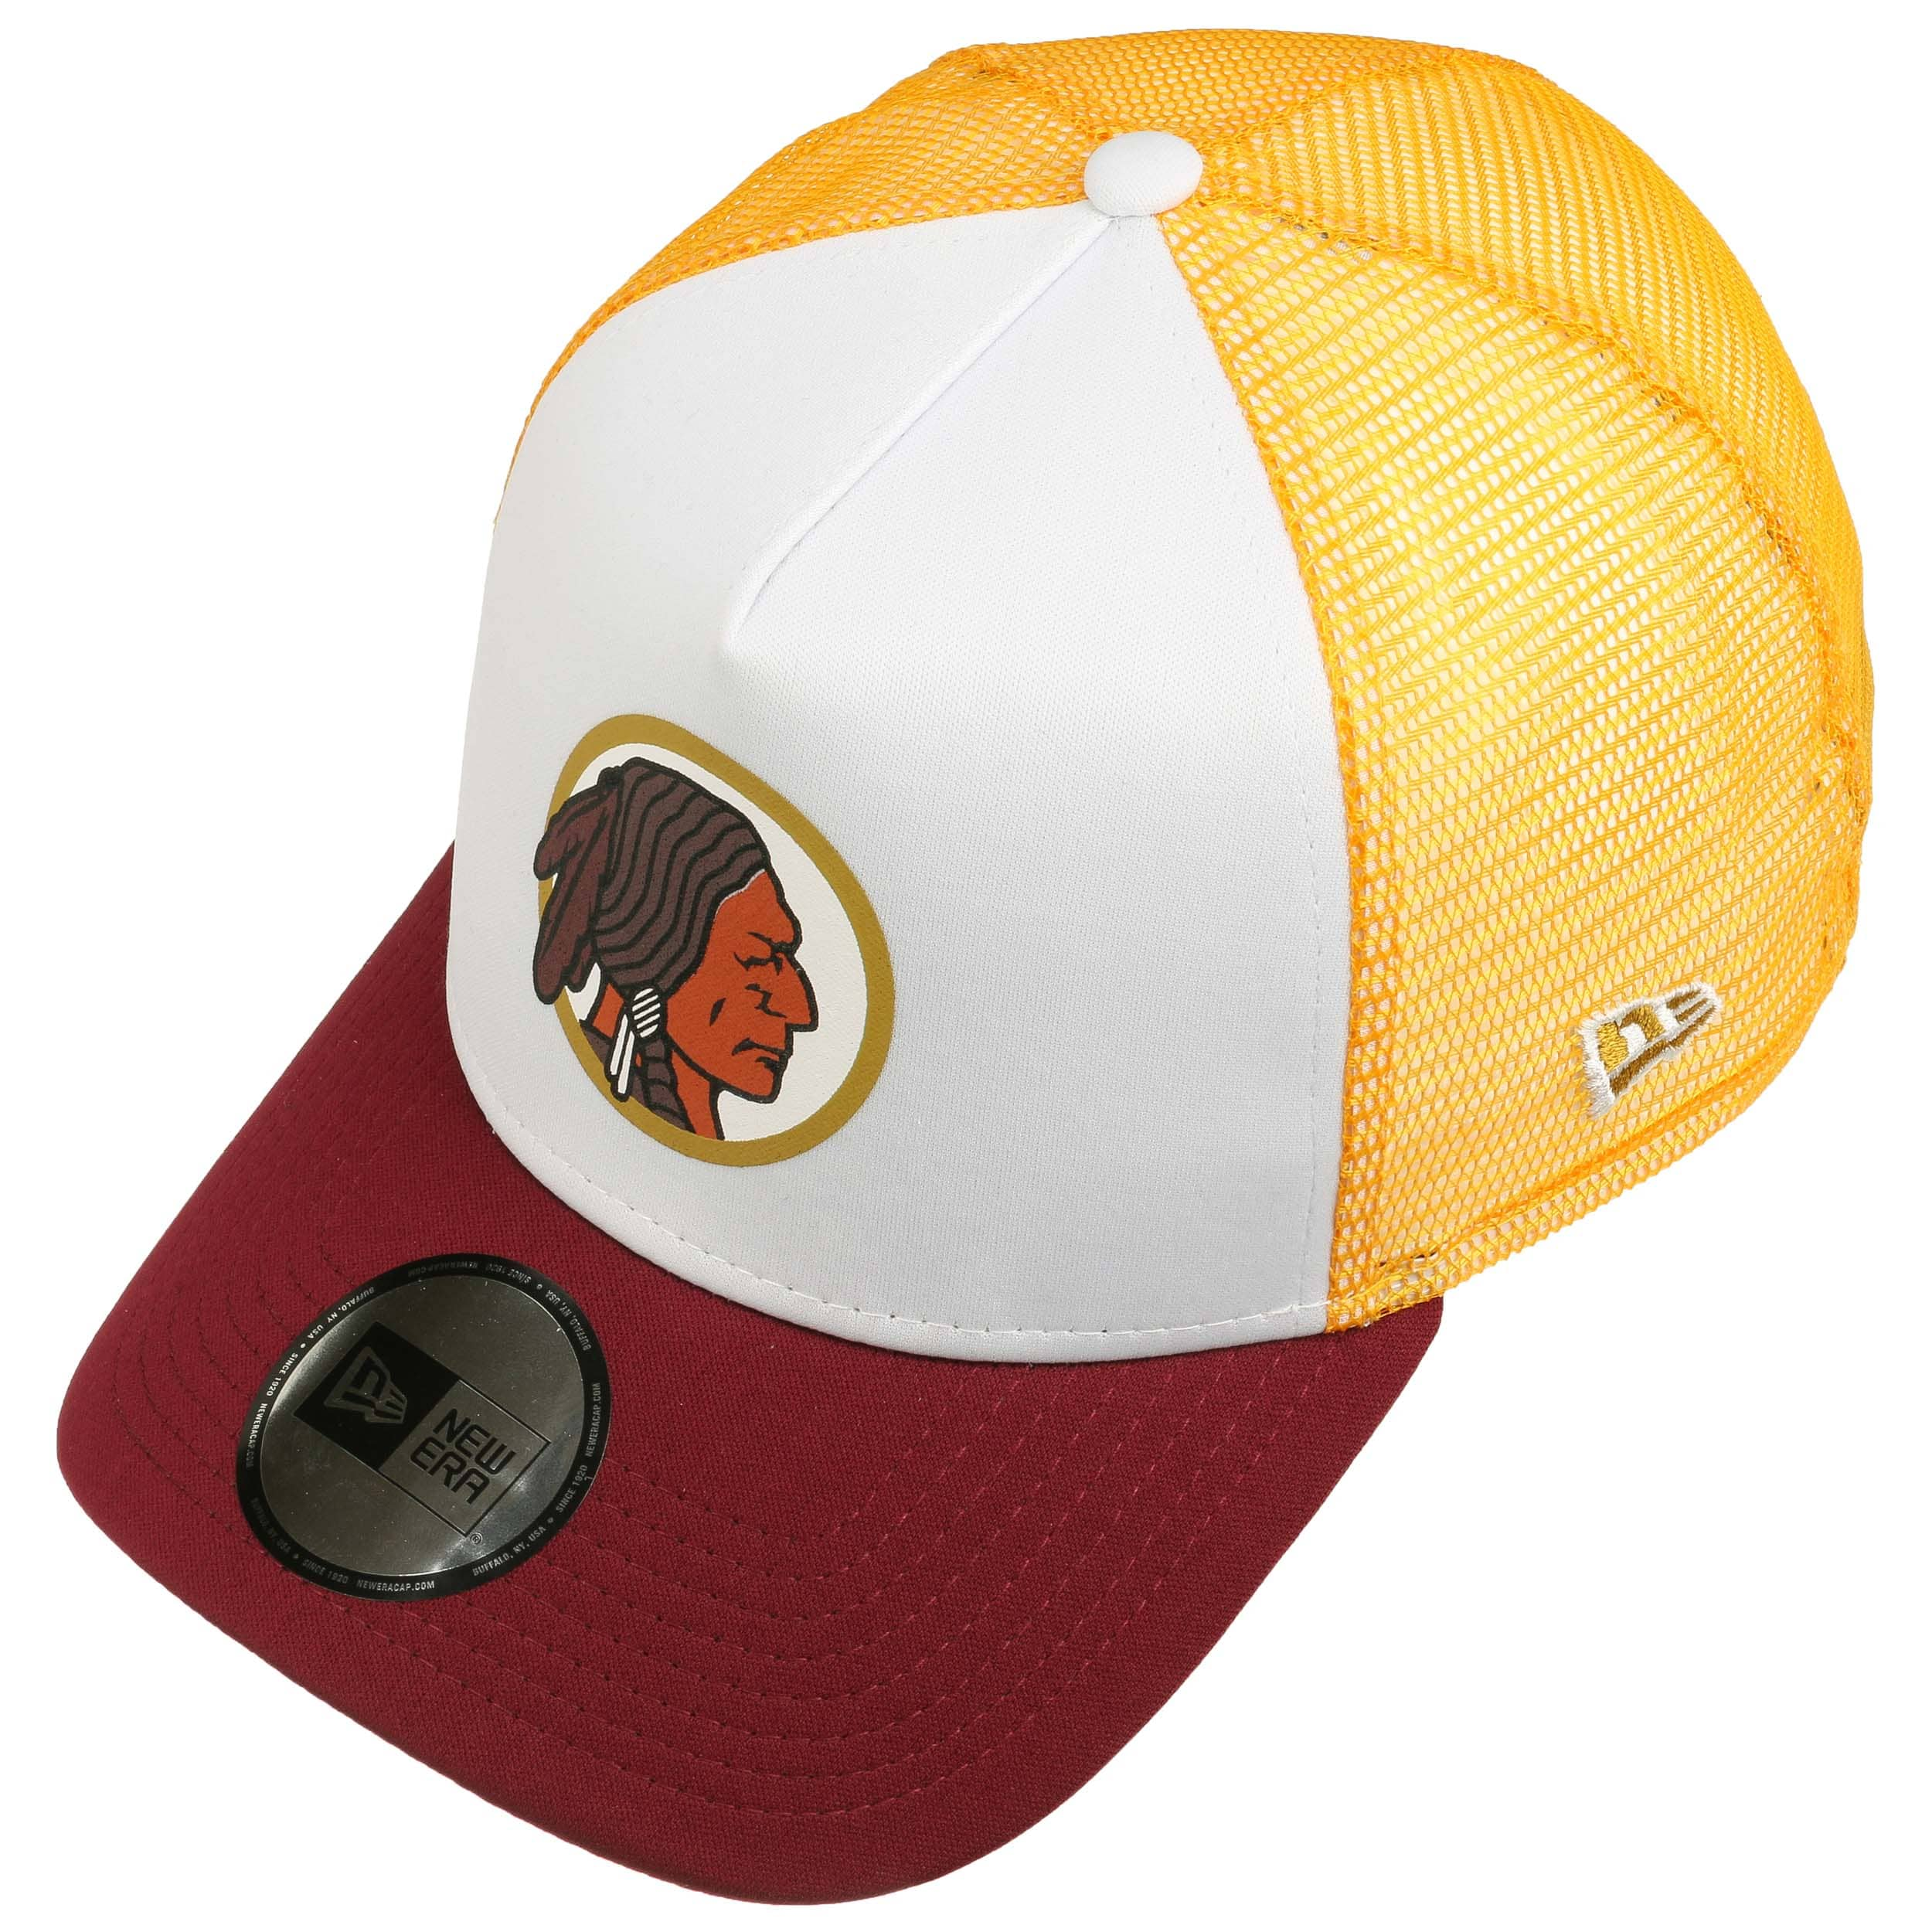 NFL Throwback Redskins Trucker Cap by New Era - white 1 ... 5f6b10cf5d6